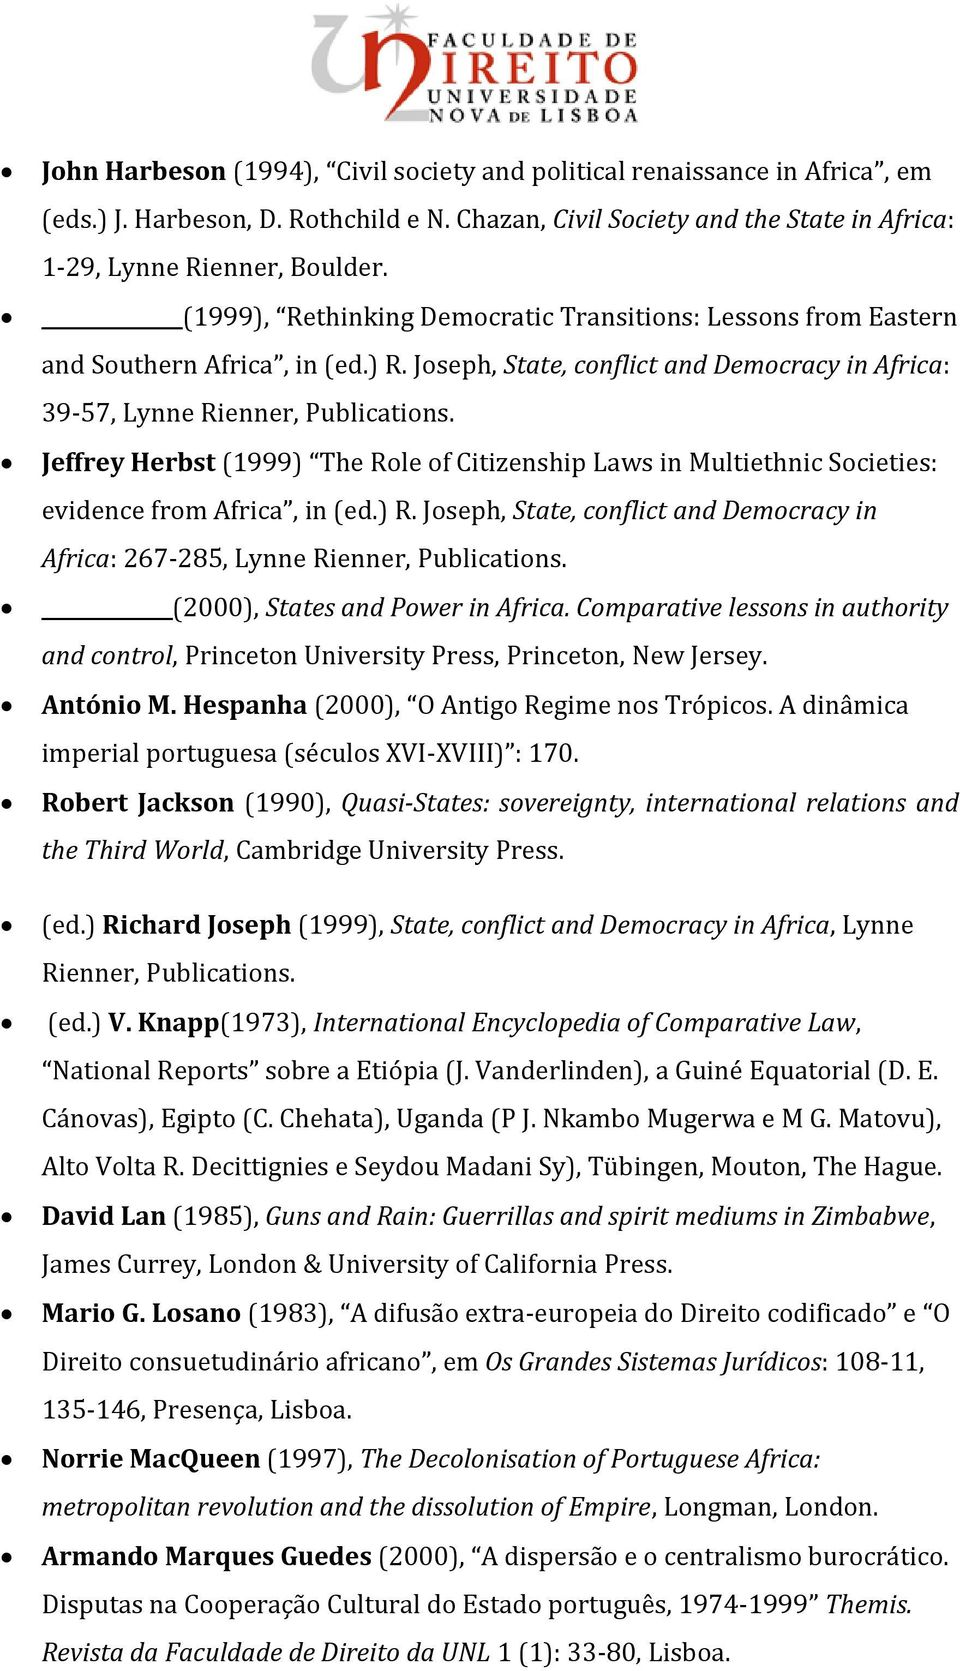 Jeffrey Herbst (1999) The Role of Citizenship Laws in Multiethnic Societies: evidence from Africa, in (ed.) R. Joseph, State, conflict and Democracy in Africa: 267-285, Lynne Rienner, Publications.